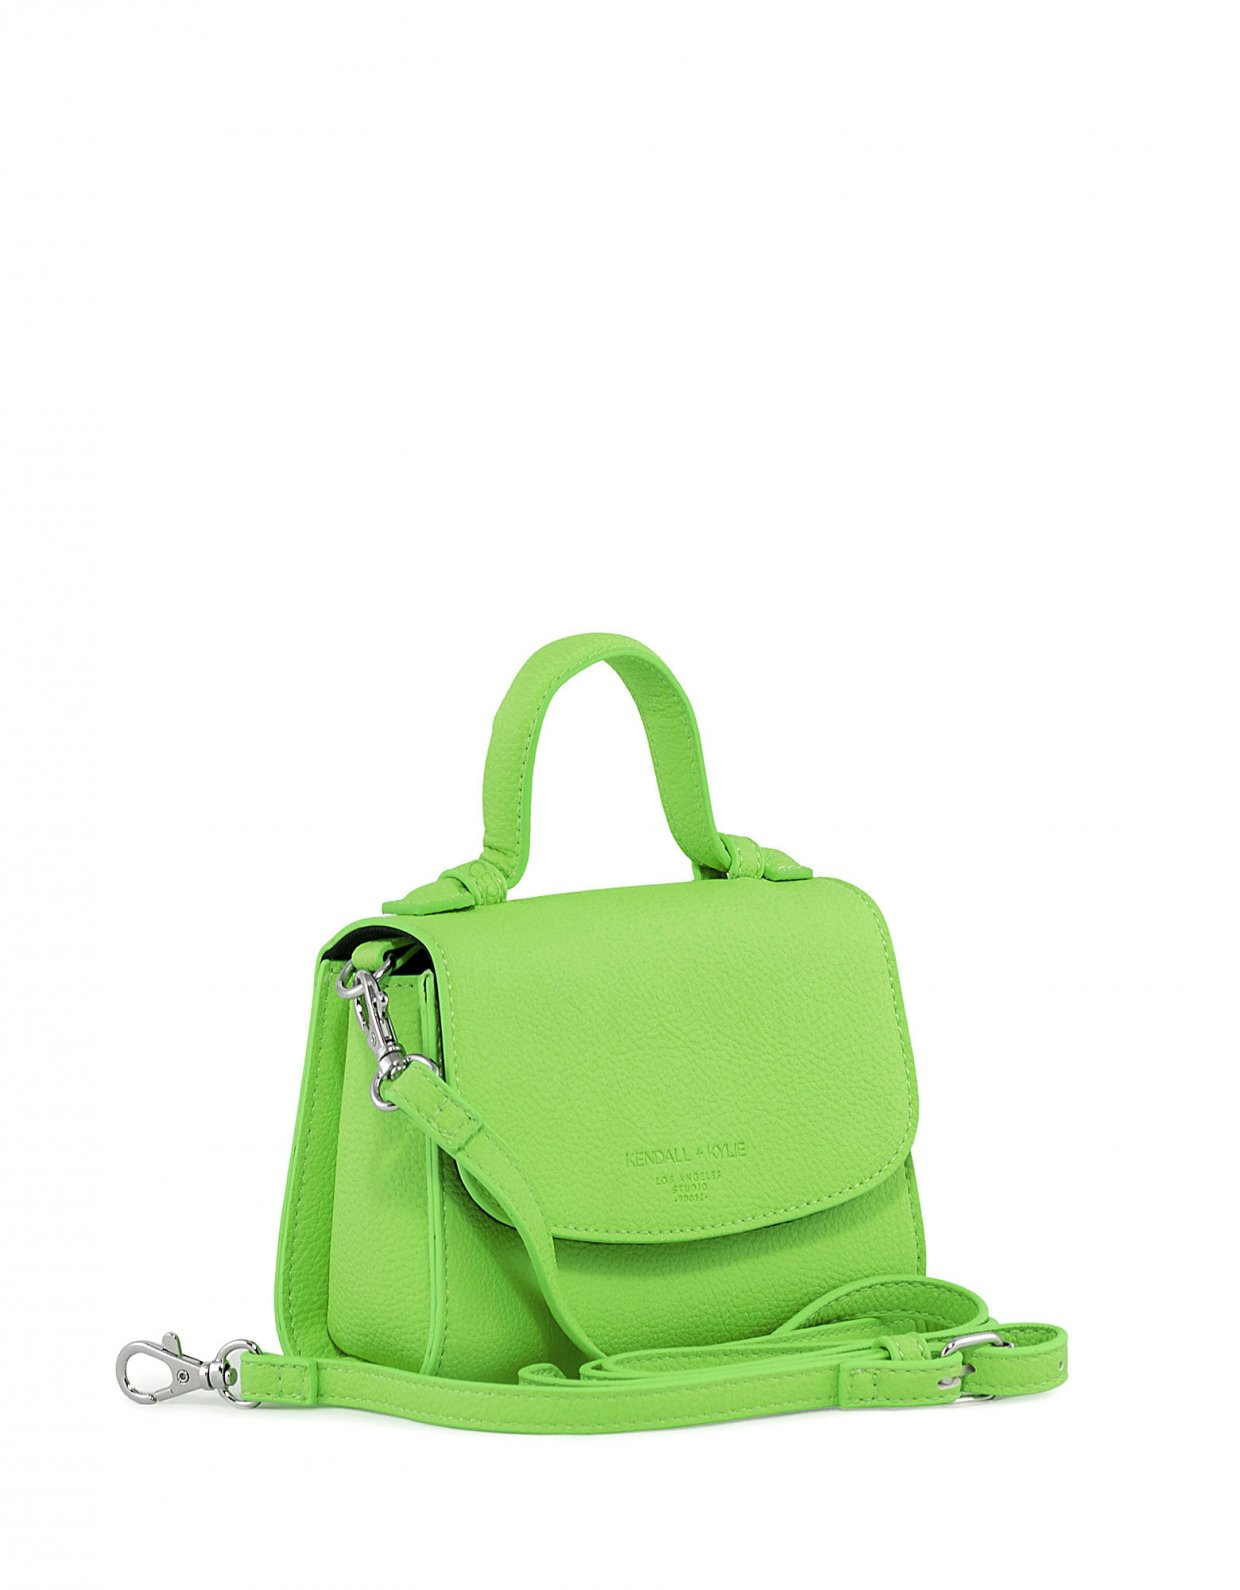 Kendall + Kylie Bae mini crossbody neon green pebble